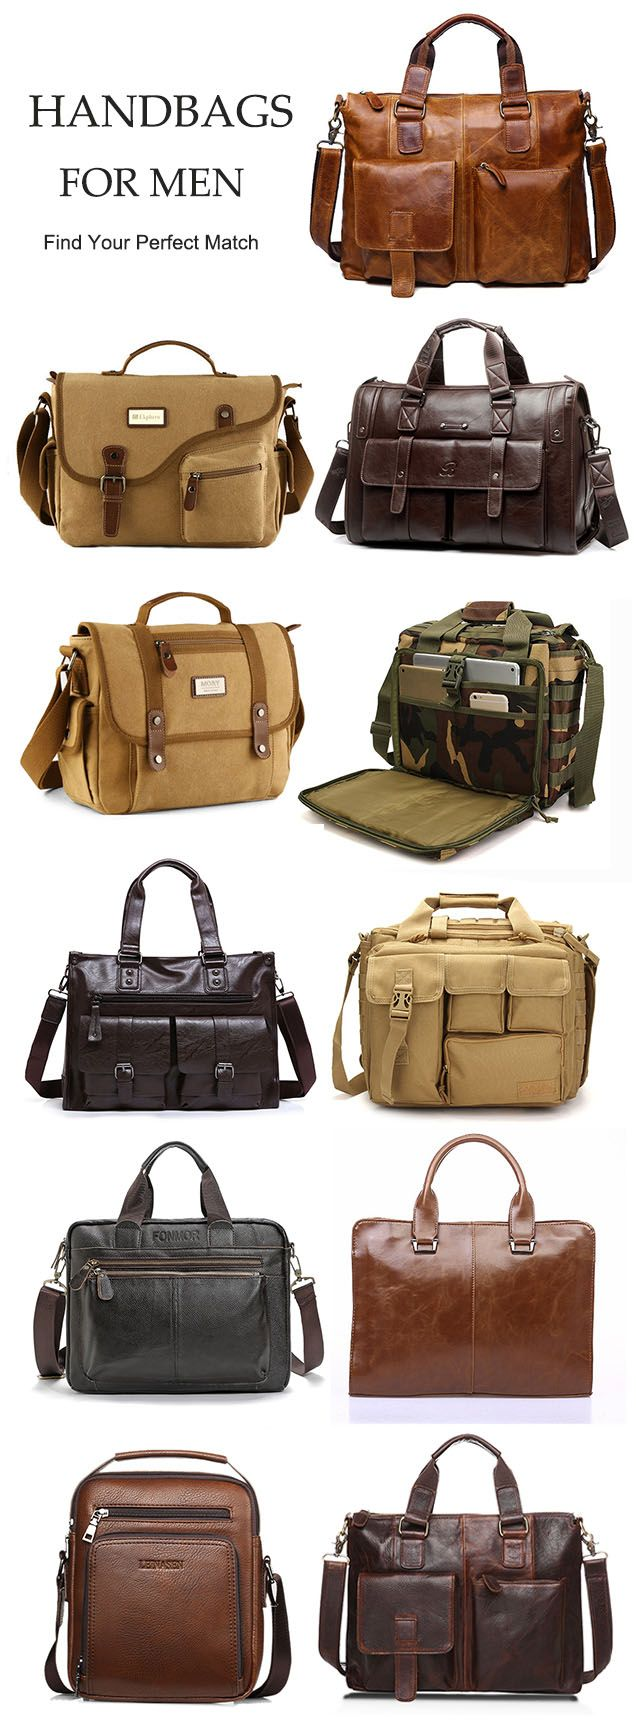 From US$15.94 + Free shipping. Men's bag handbags, popular bags for men, large multi-function bags, for business, for leisure, find the style that suits you!